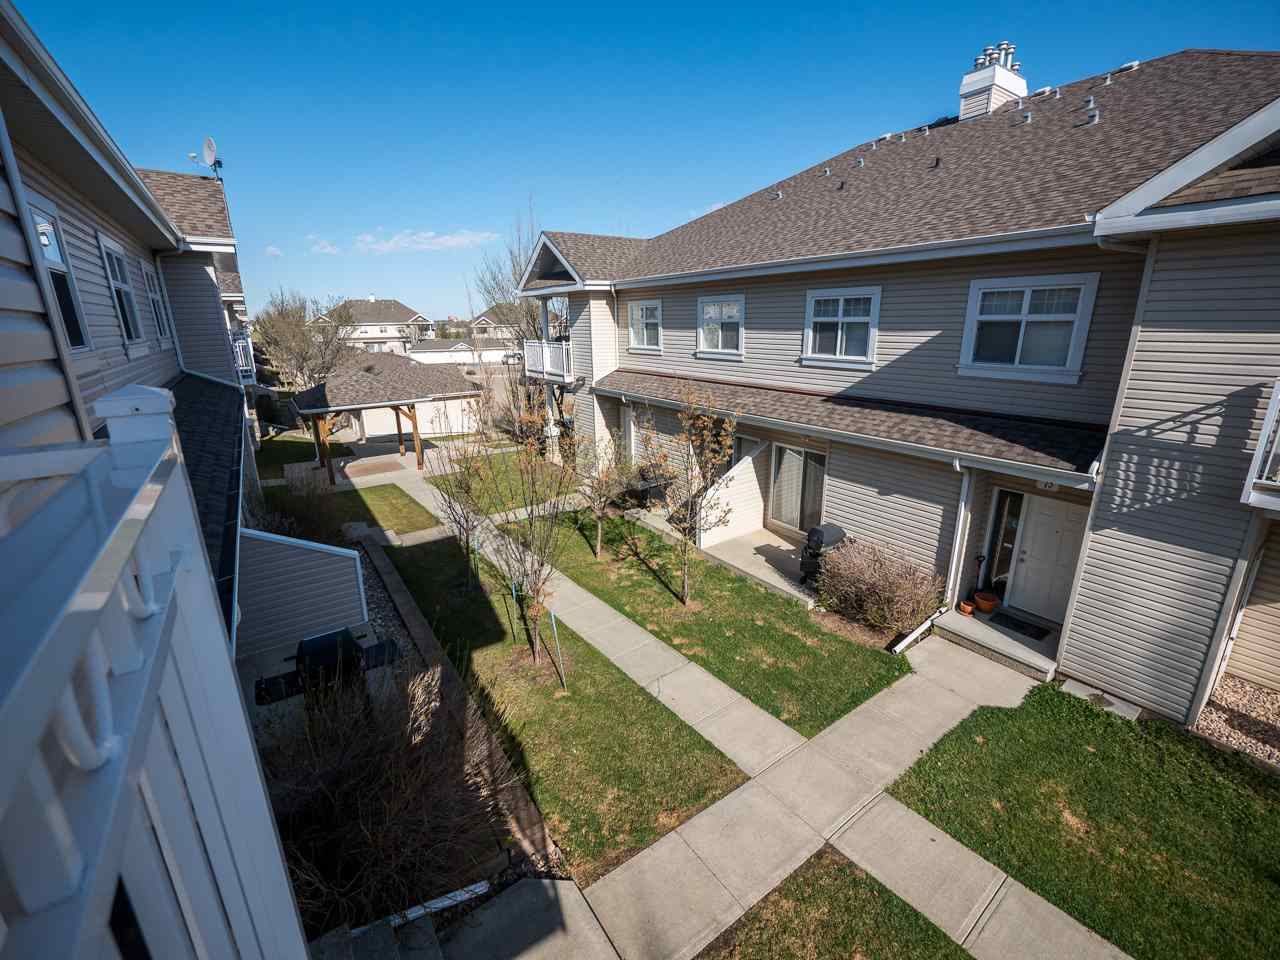 Photo 19: 71 3040 SPENCE Way in Edmonton: Zone 53 Townhouse for sale : MLS(r) # E4063695